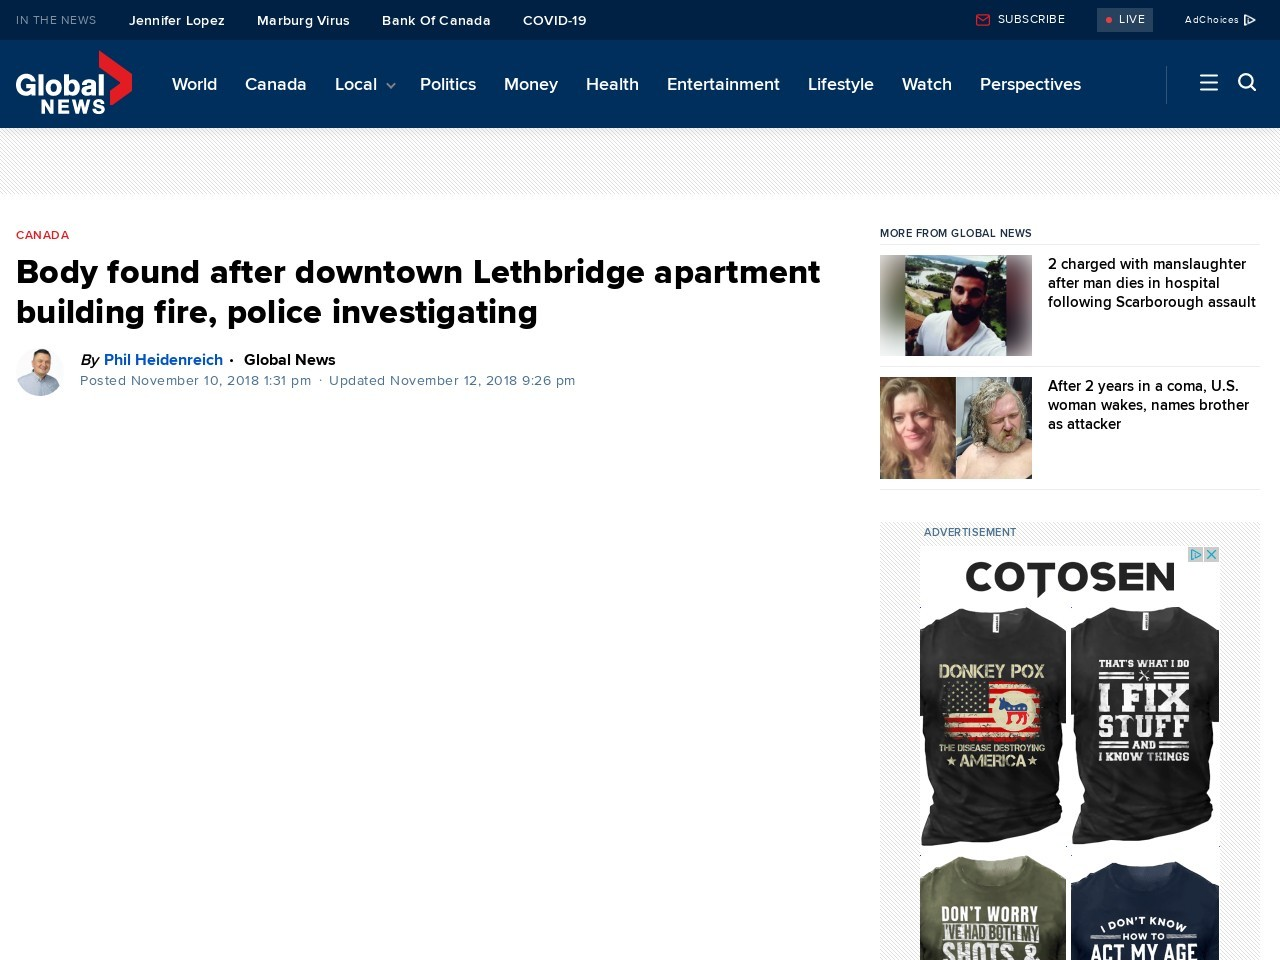 Body found after downtown Lethbridge apartment building fire, police investigating